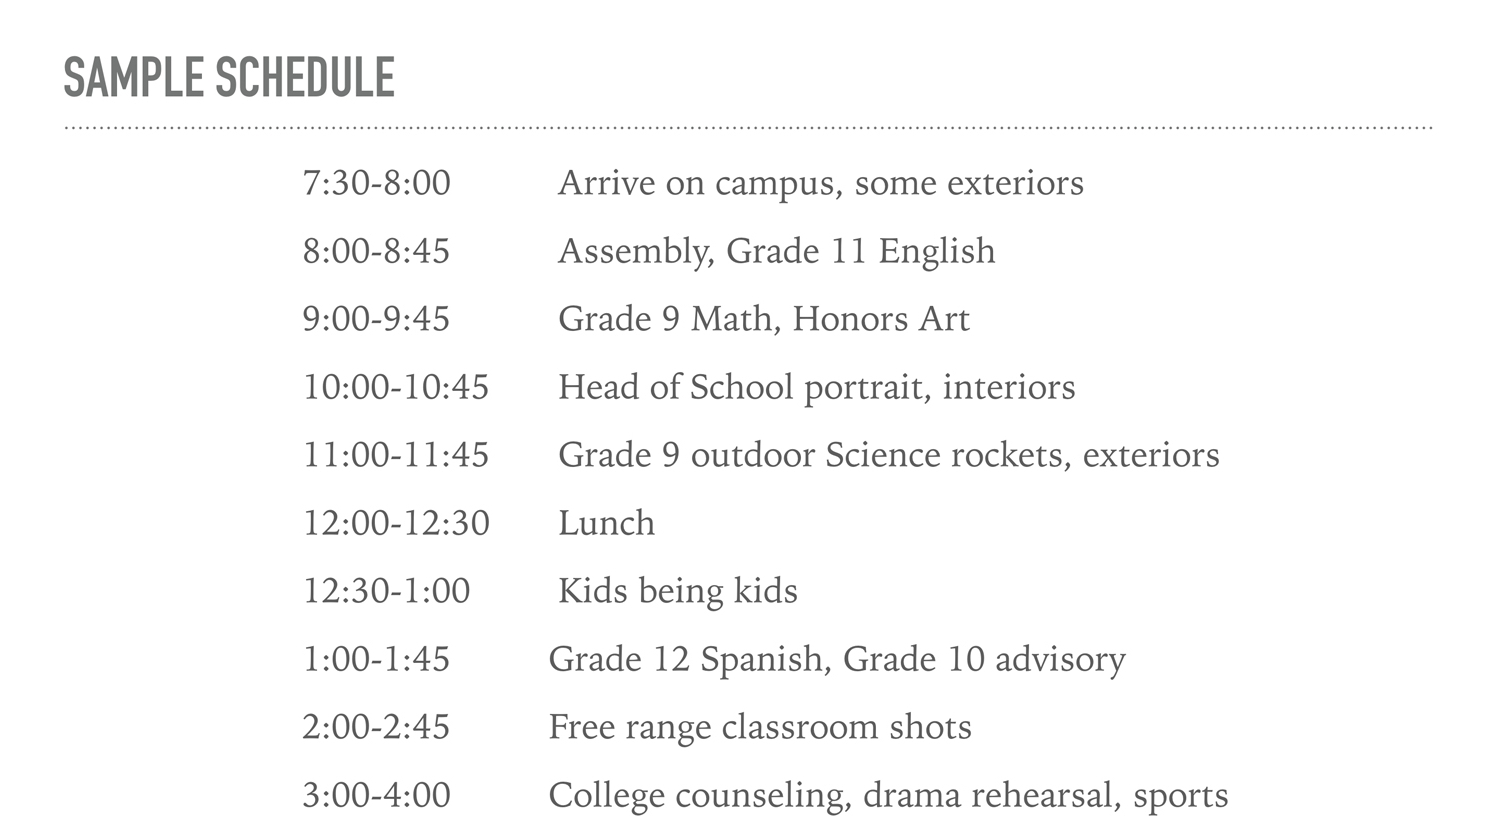 Schedule for Day School - (Boarding school schedules go into the night.)